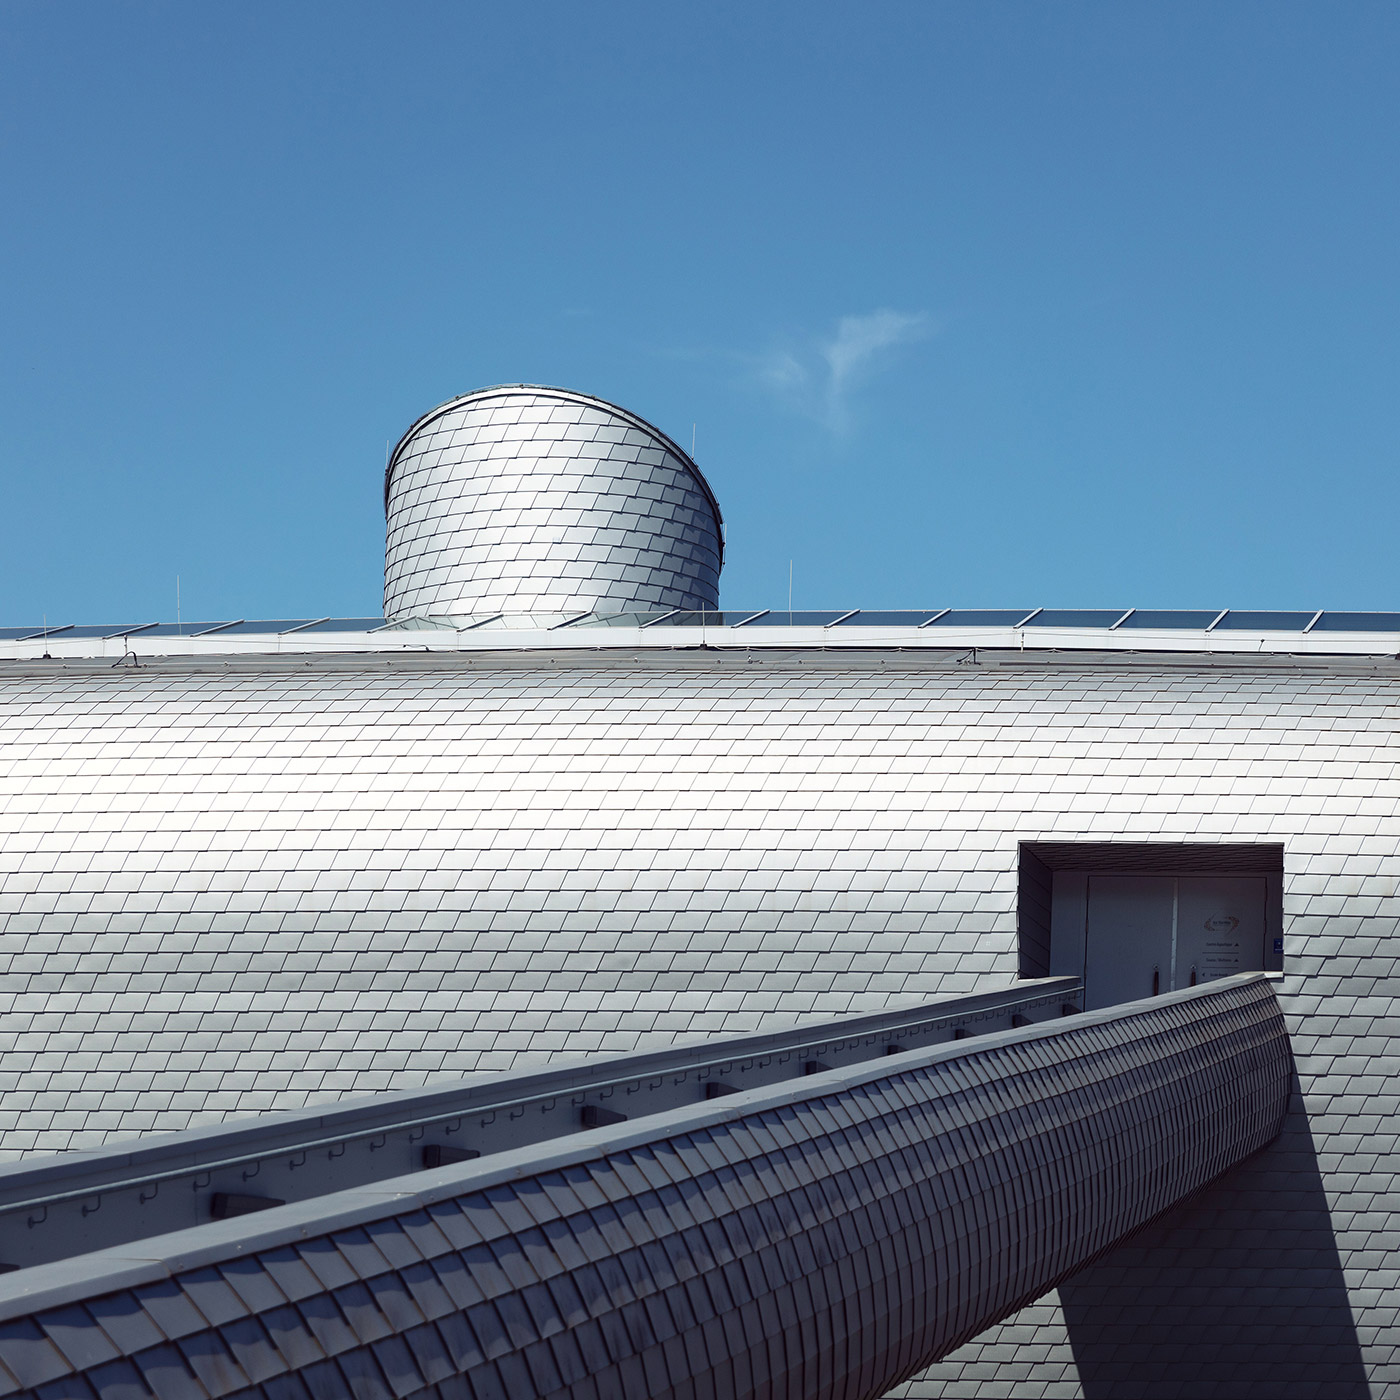 Les Thermes . Location: Strassen, Luxembourg . Architect: Jim Clemes Associates